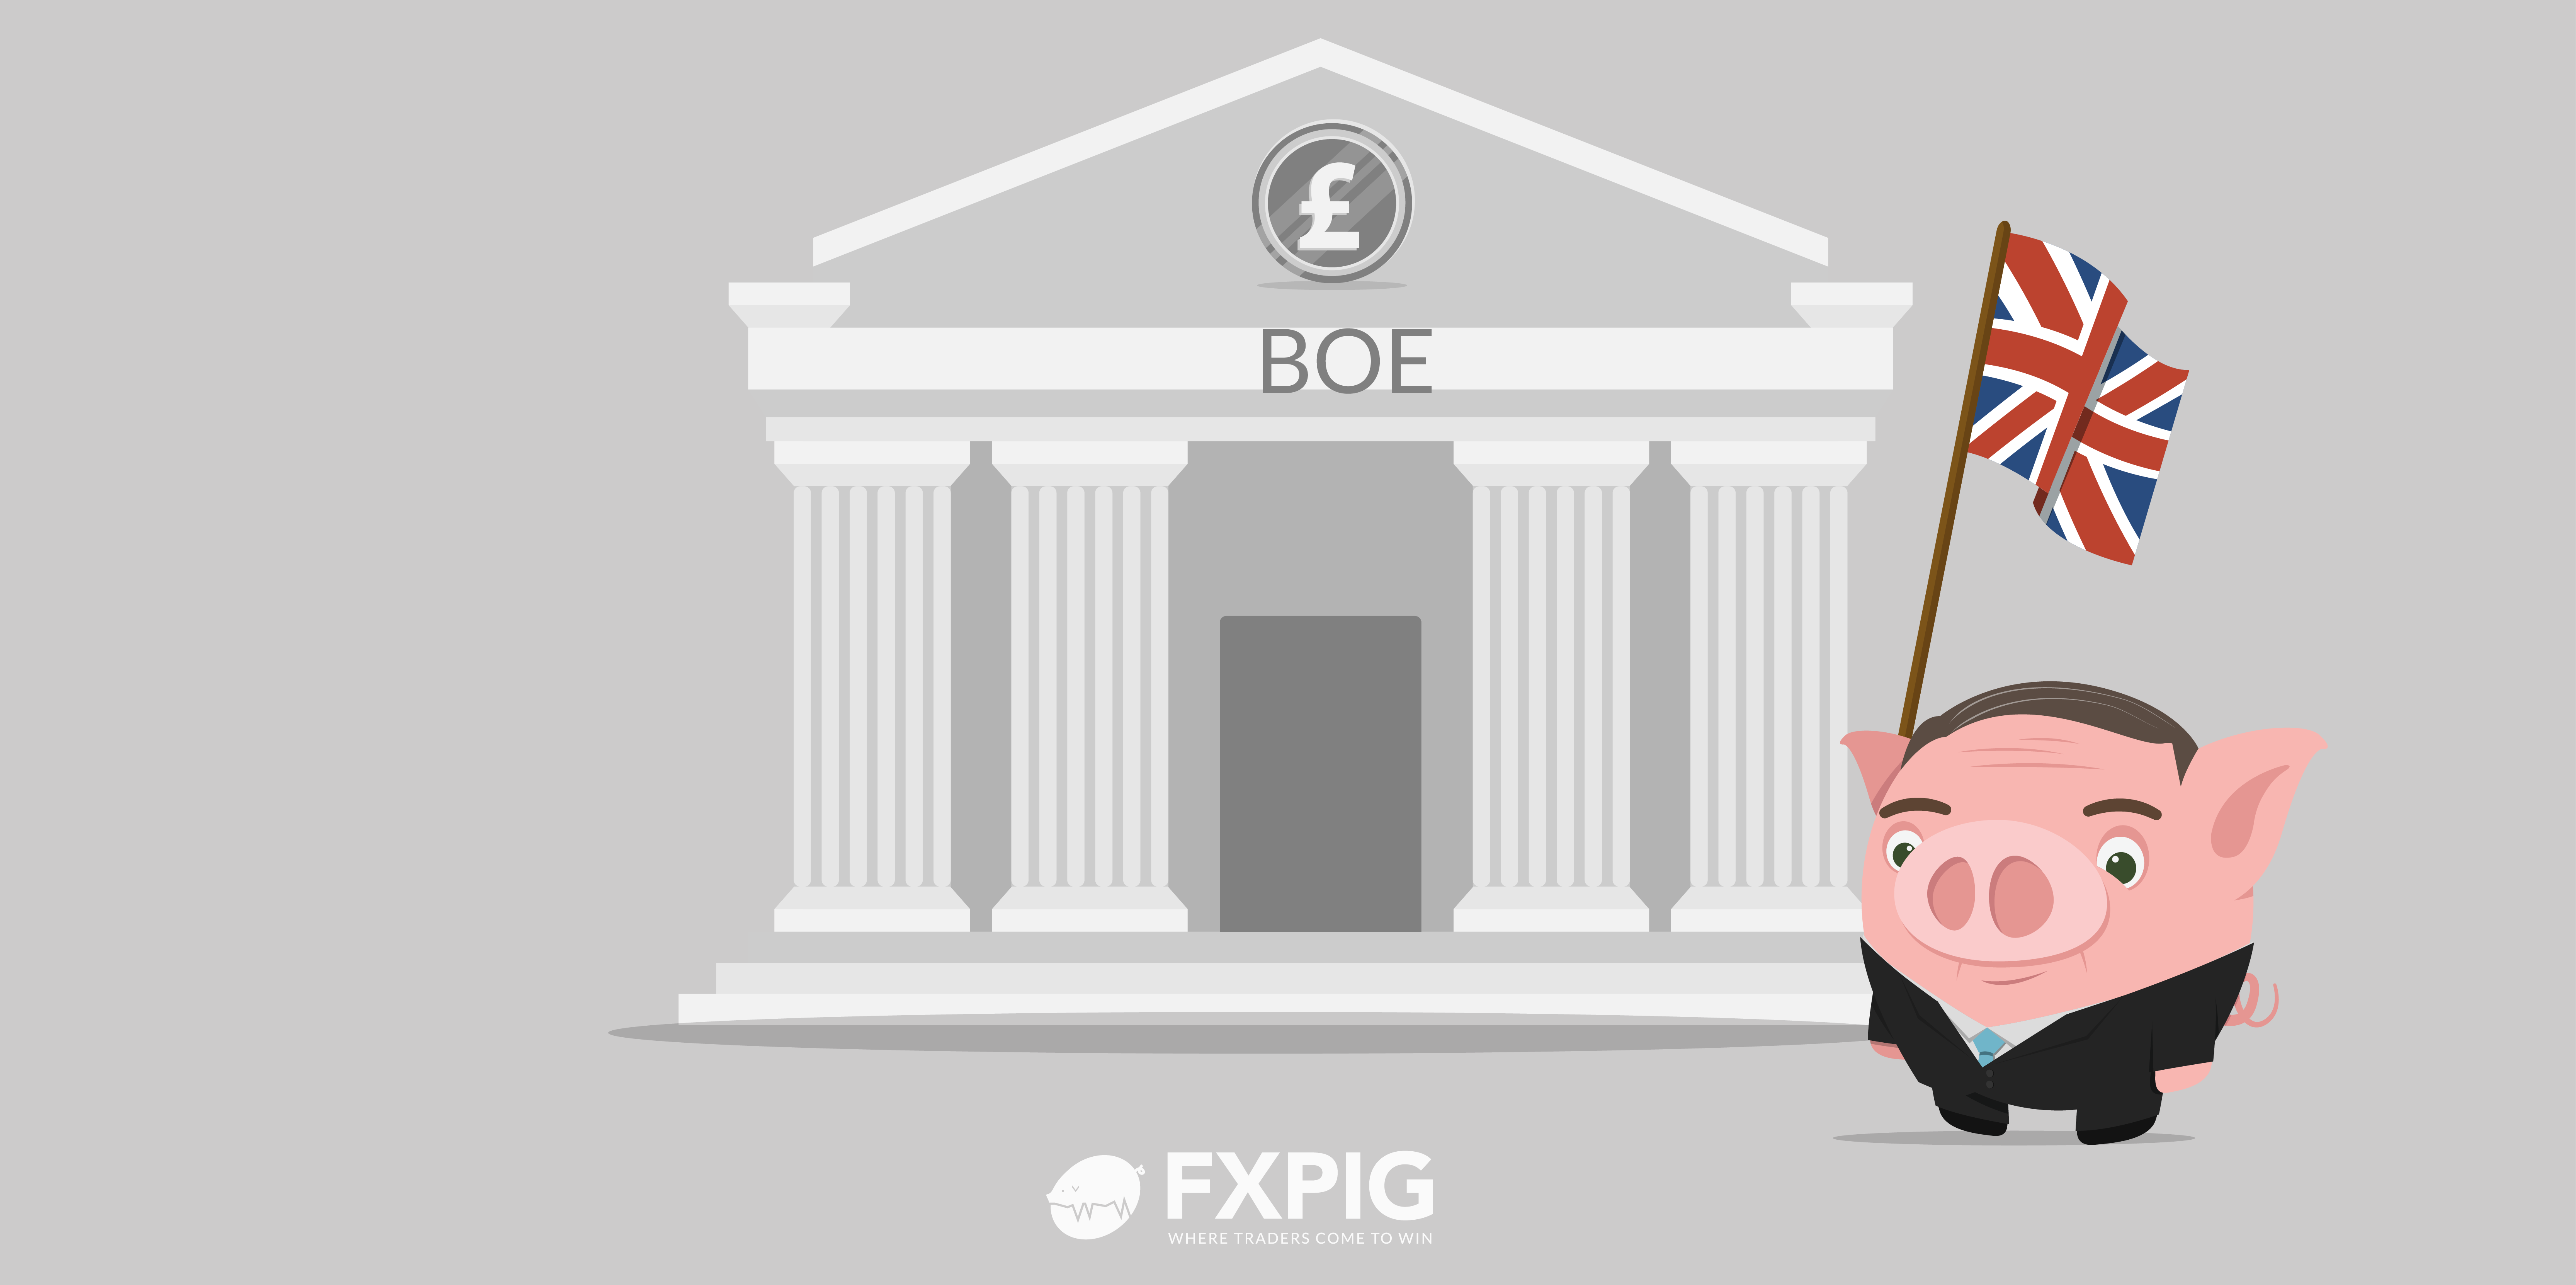 FOREX_GBP-decline-after-BoE-holds-rates_FXPIG